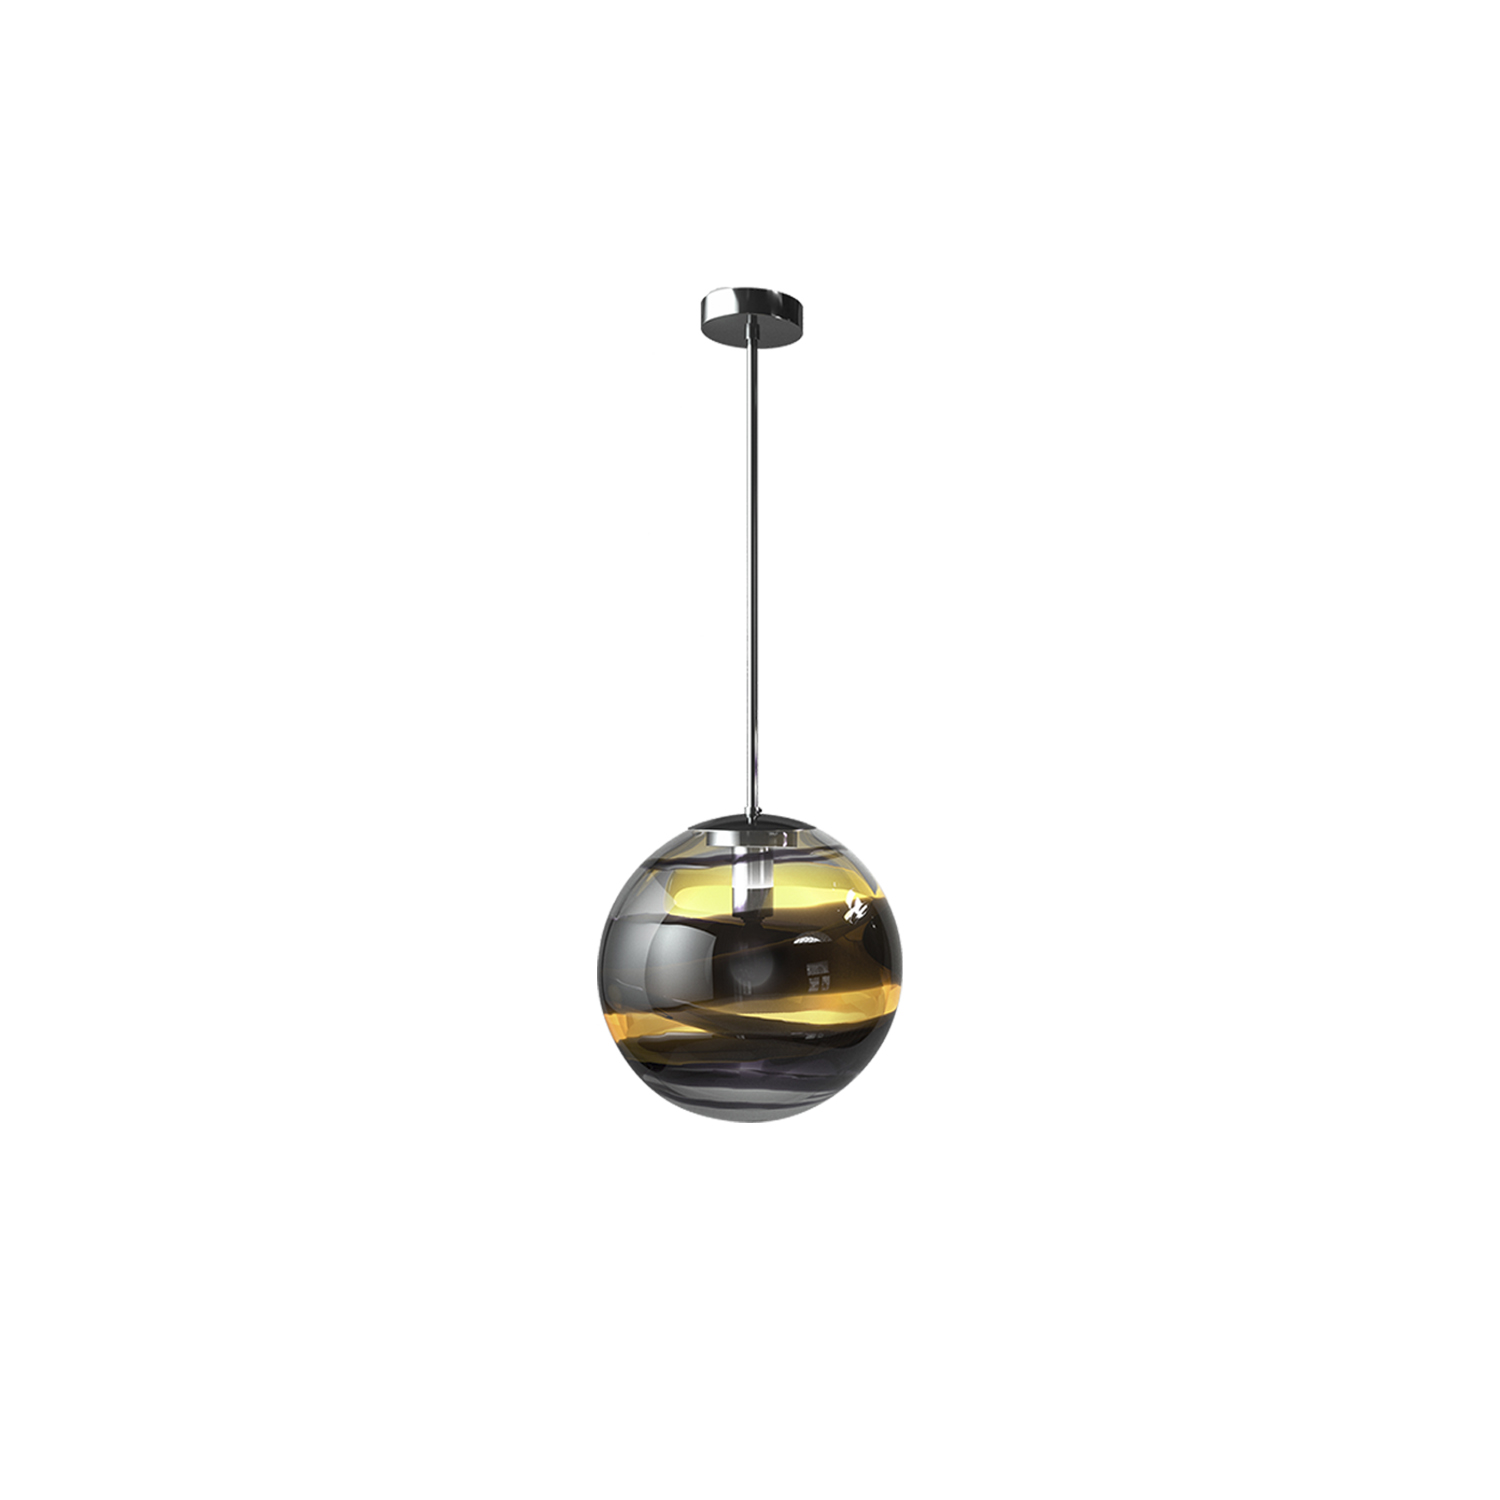 Rotondo Pendant Light - Bold shades of Black blend together with the hues of Crystal or Tea of the sphere. They enclose it, surrounding it with thin and thick lines, alternating in a seemingly random fashion, like belts or laces. A fine interplay of transparencies gives a warm and sensual glow to light passing through the glass. Rotondo is exclusively available as a pendant light.